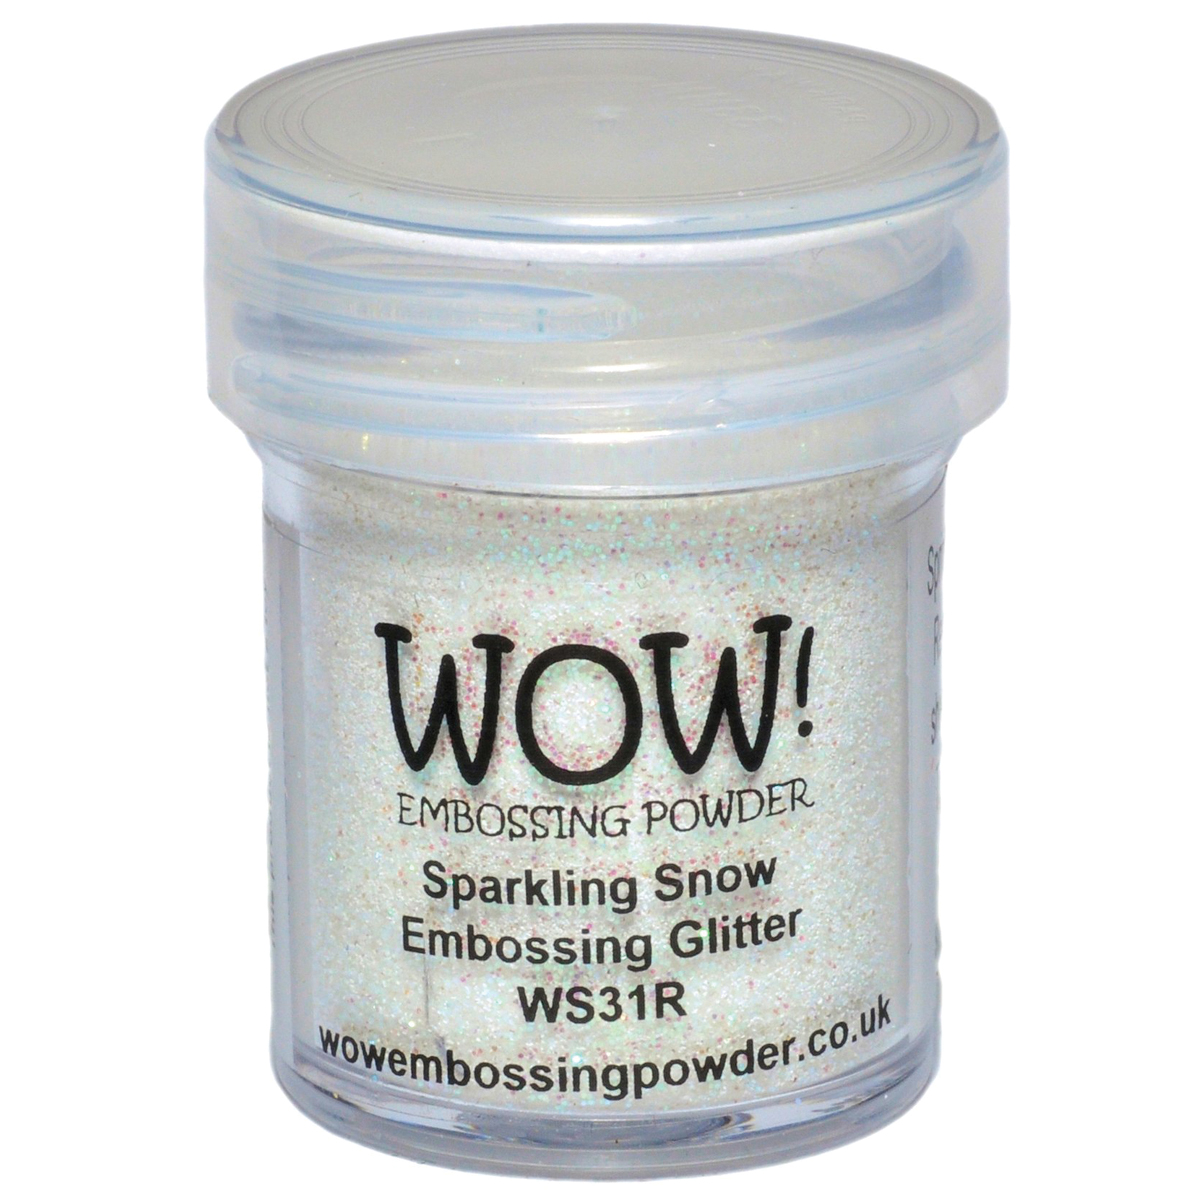 WOW Embossing Glitter - Sparkling Snow